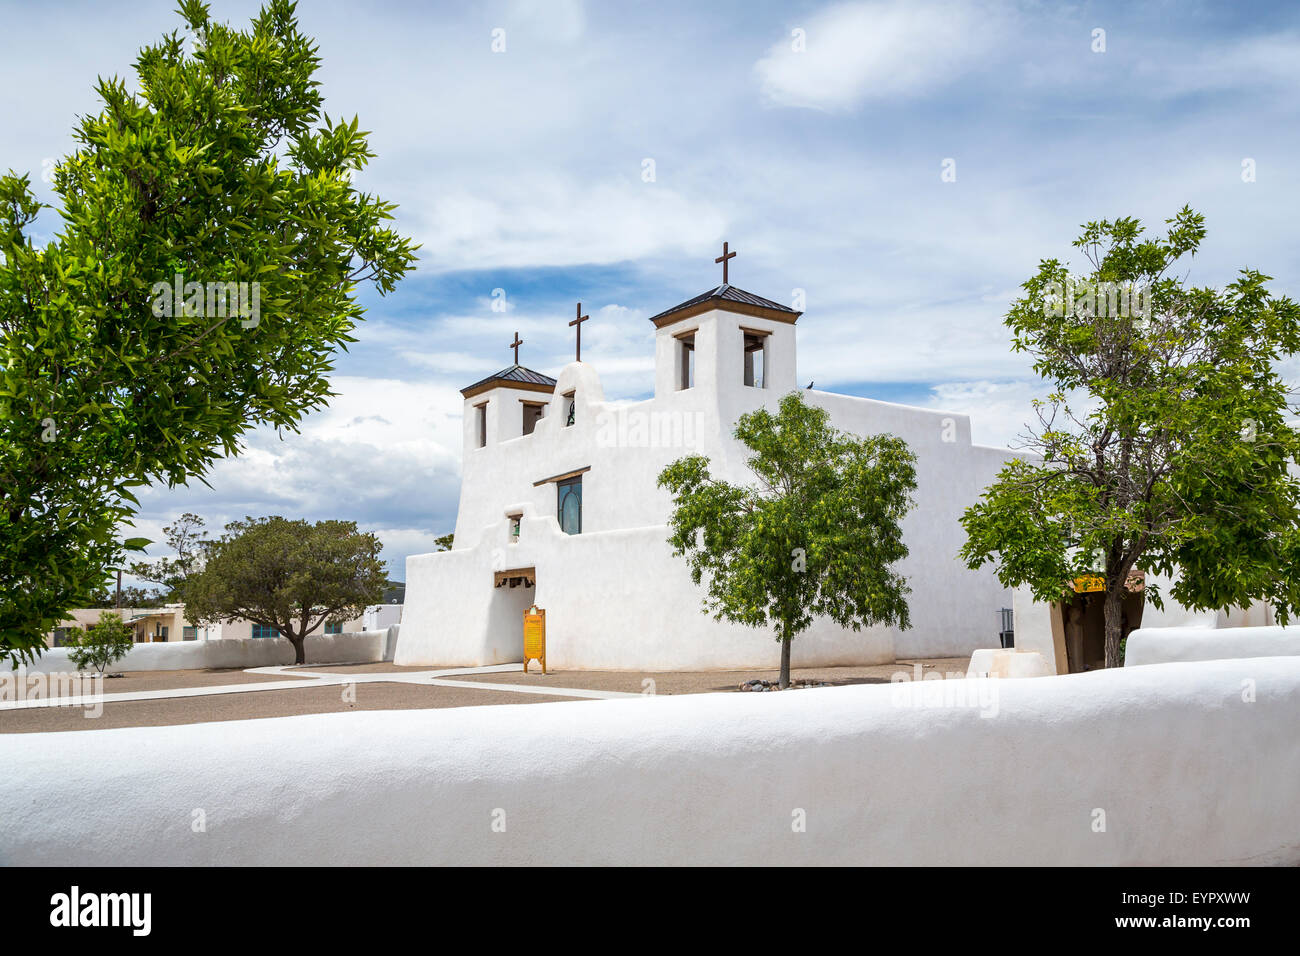 The St. Augustine Church in the Pueblo of Isleta, New Mexico, USA. - Stock Image